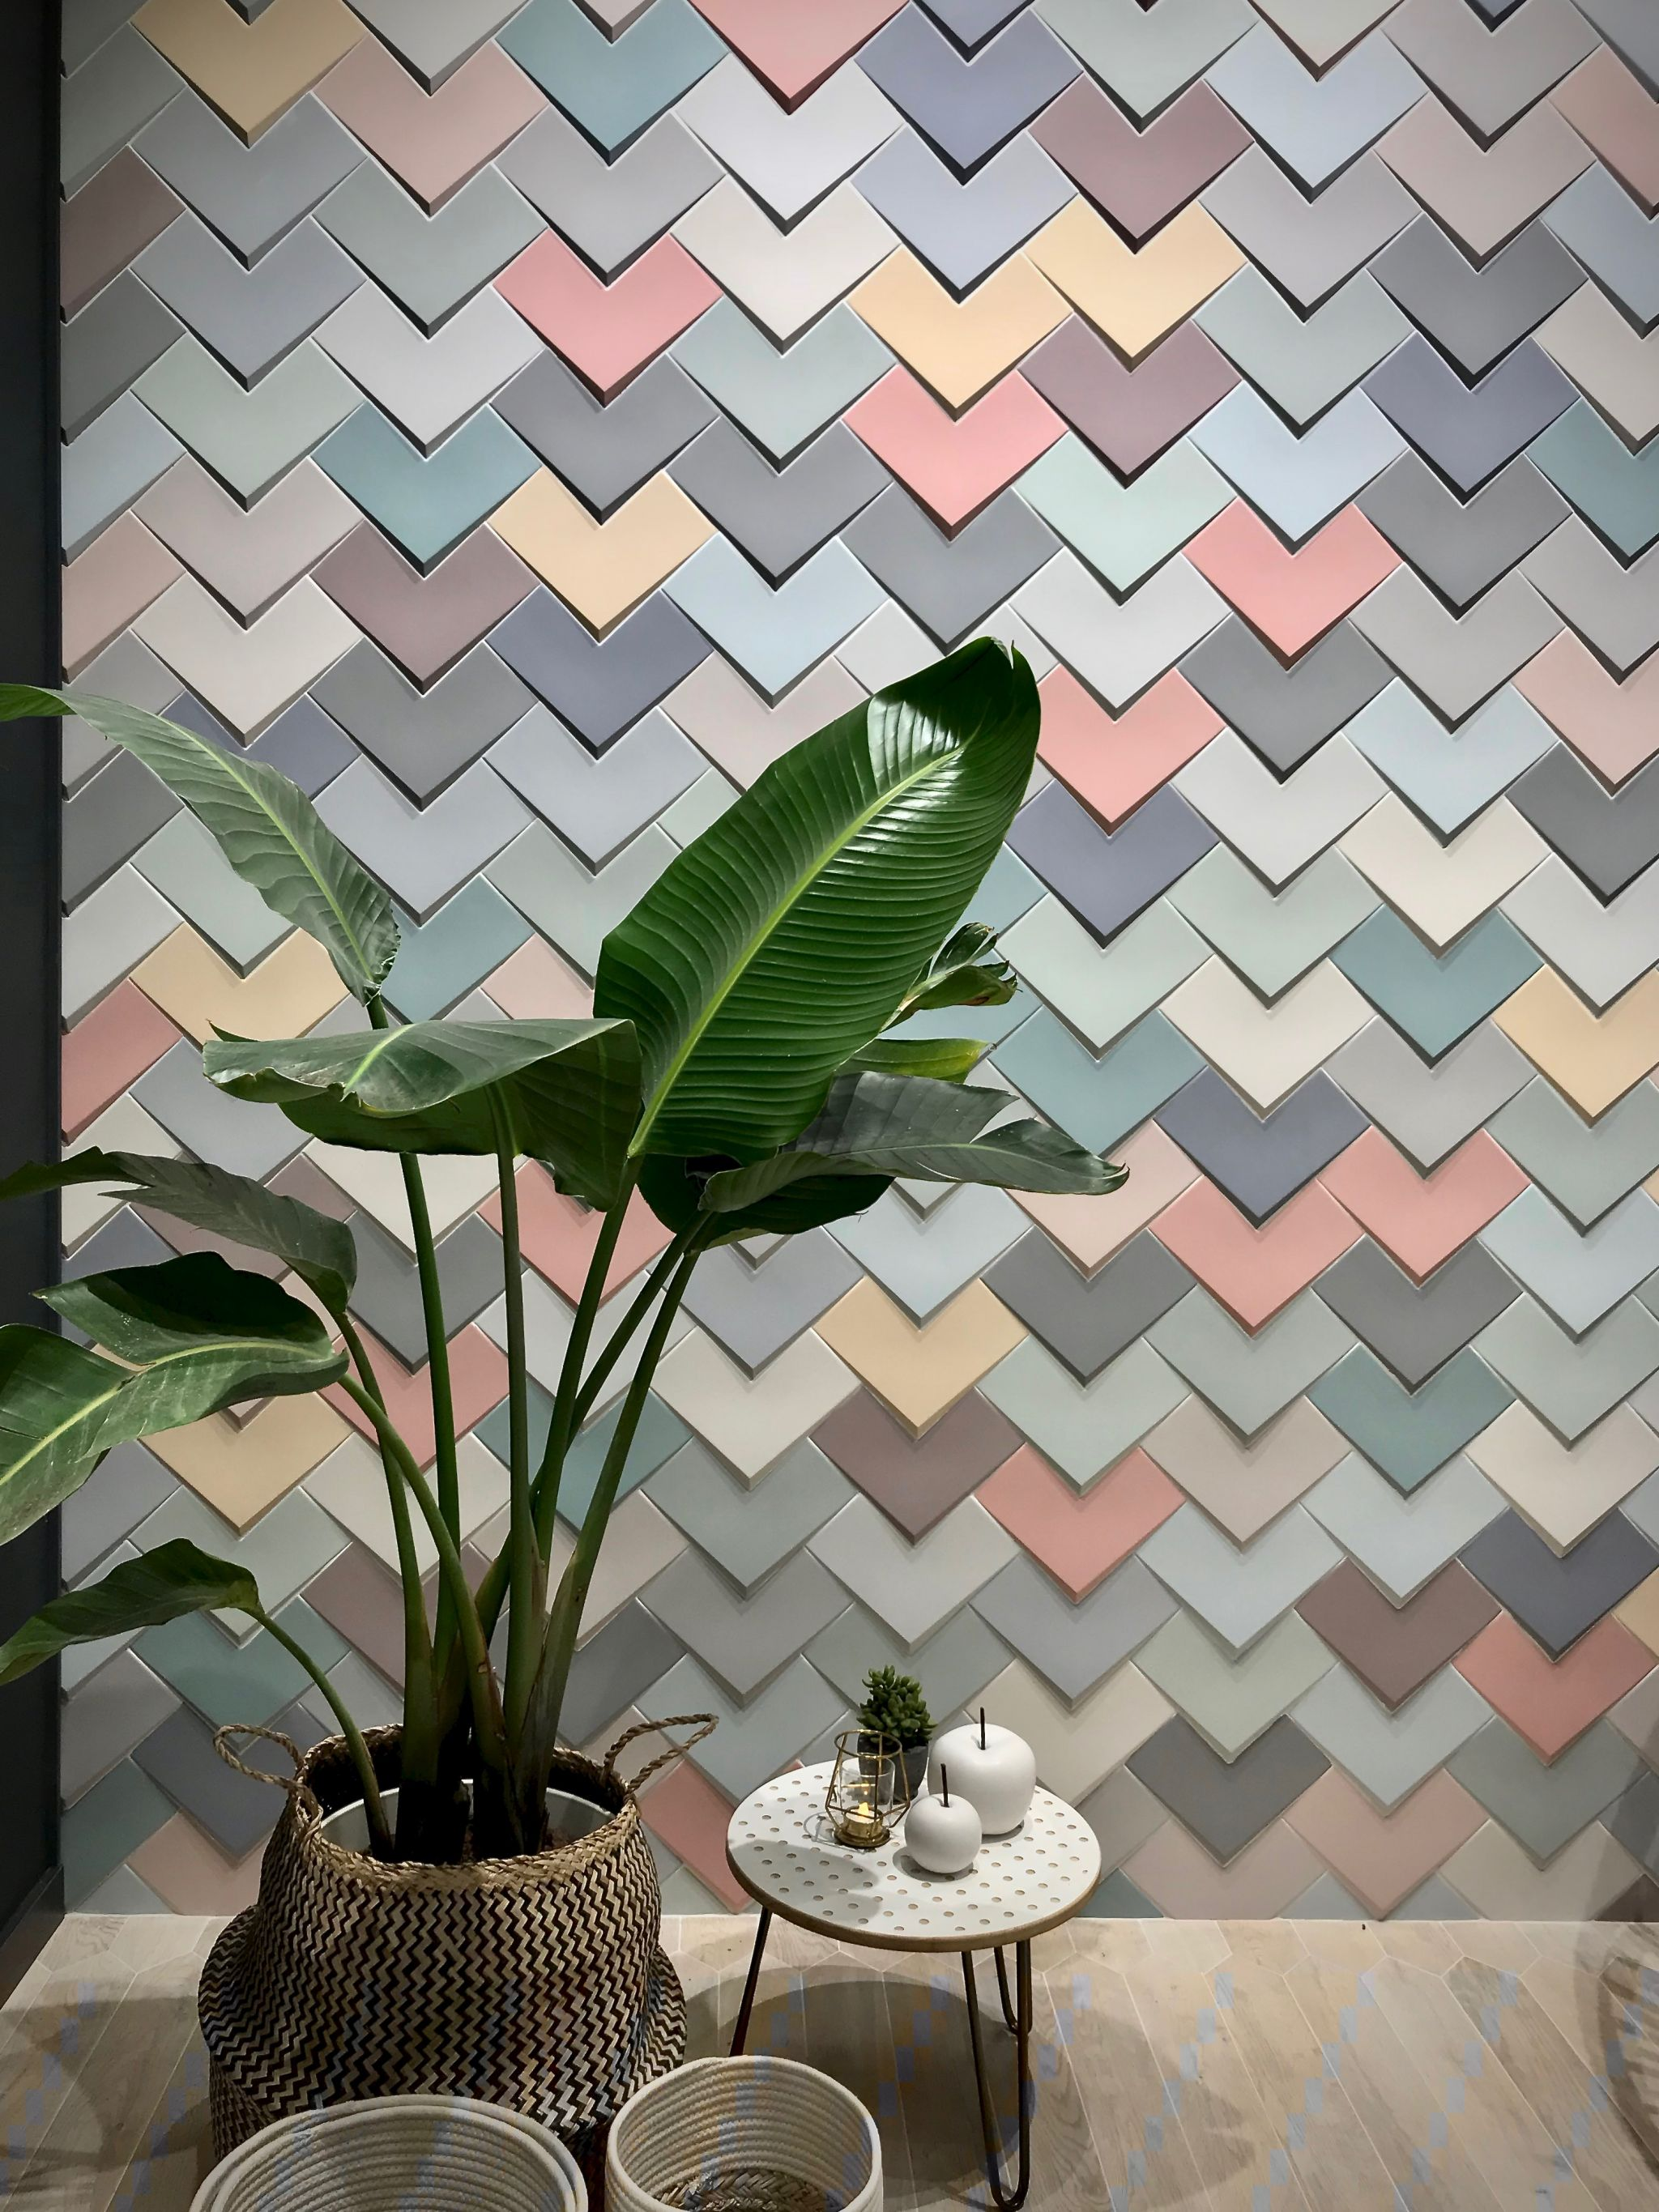 Tile Trends For 2019 From Cersaie Hello Peagreen 15 Hello Peagreen